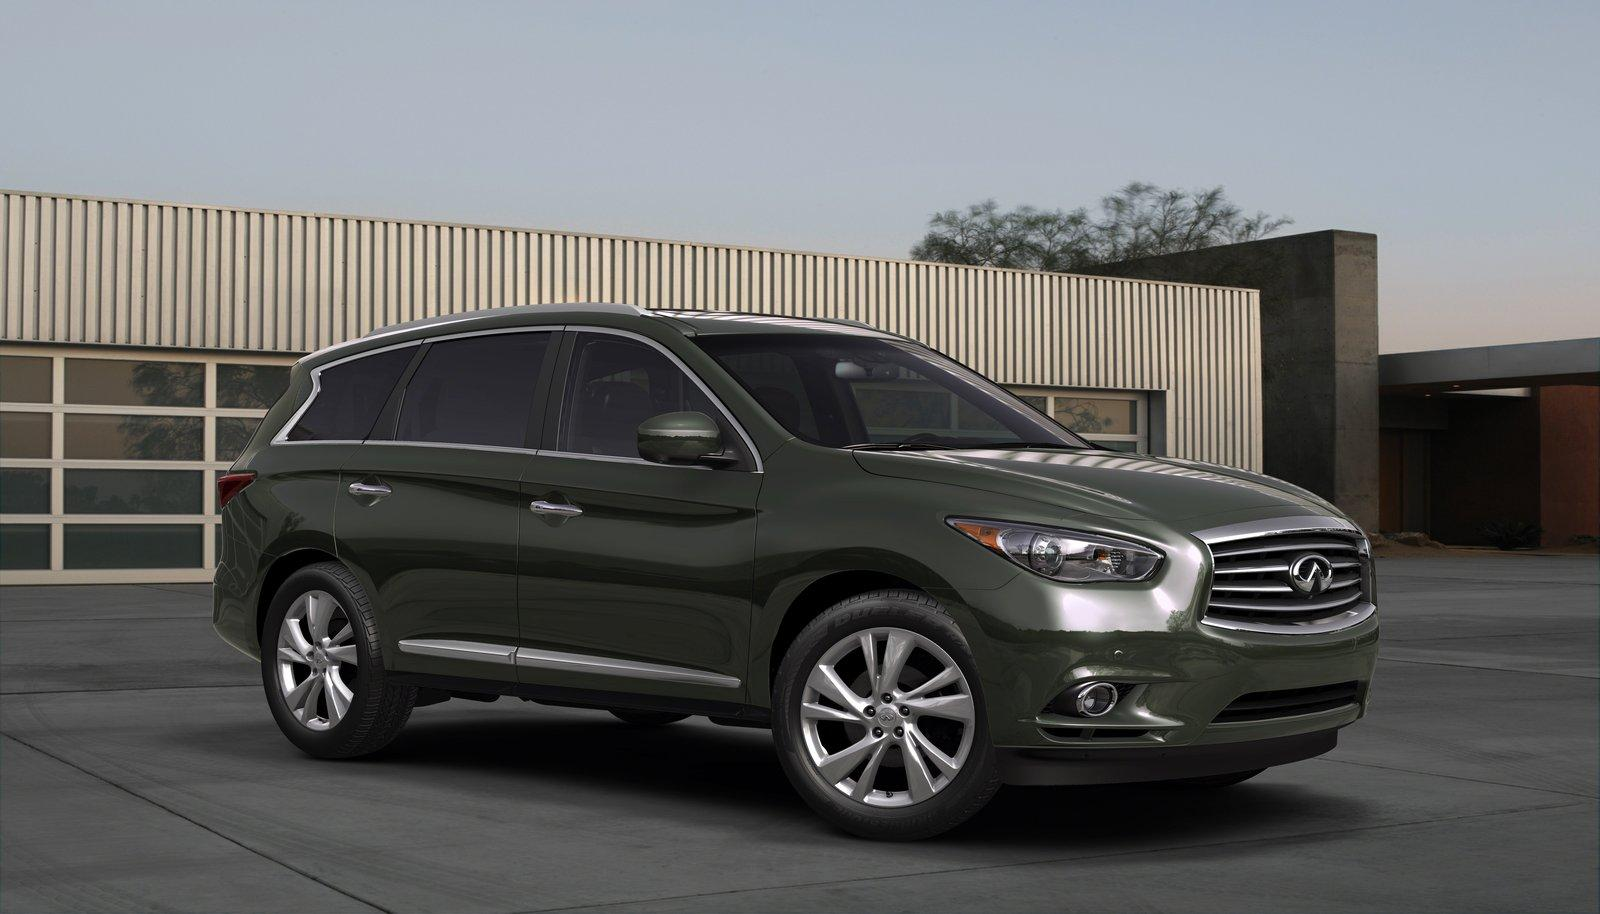 2013 Infiniti JX 1 US pricing announced for the 2013 Infiniti JX